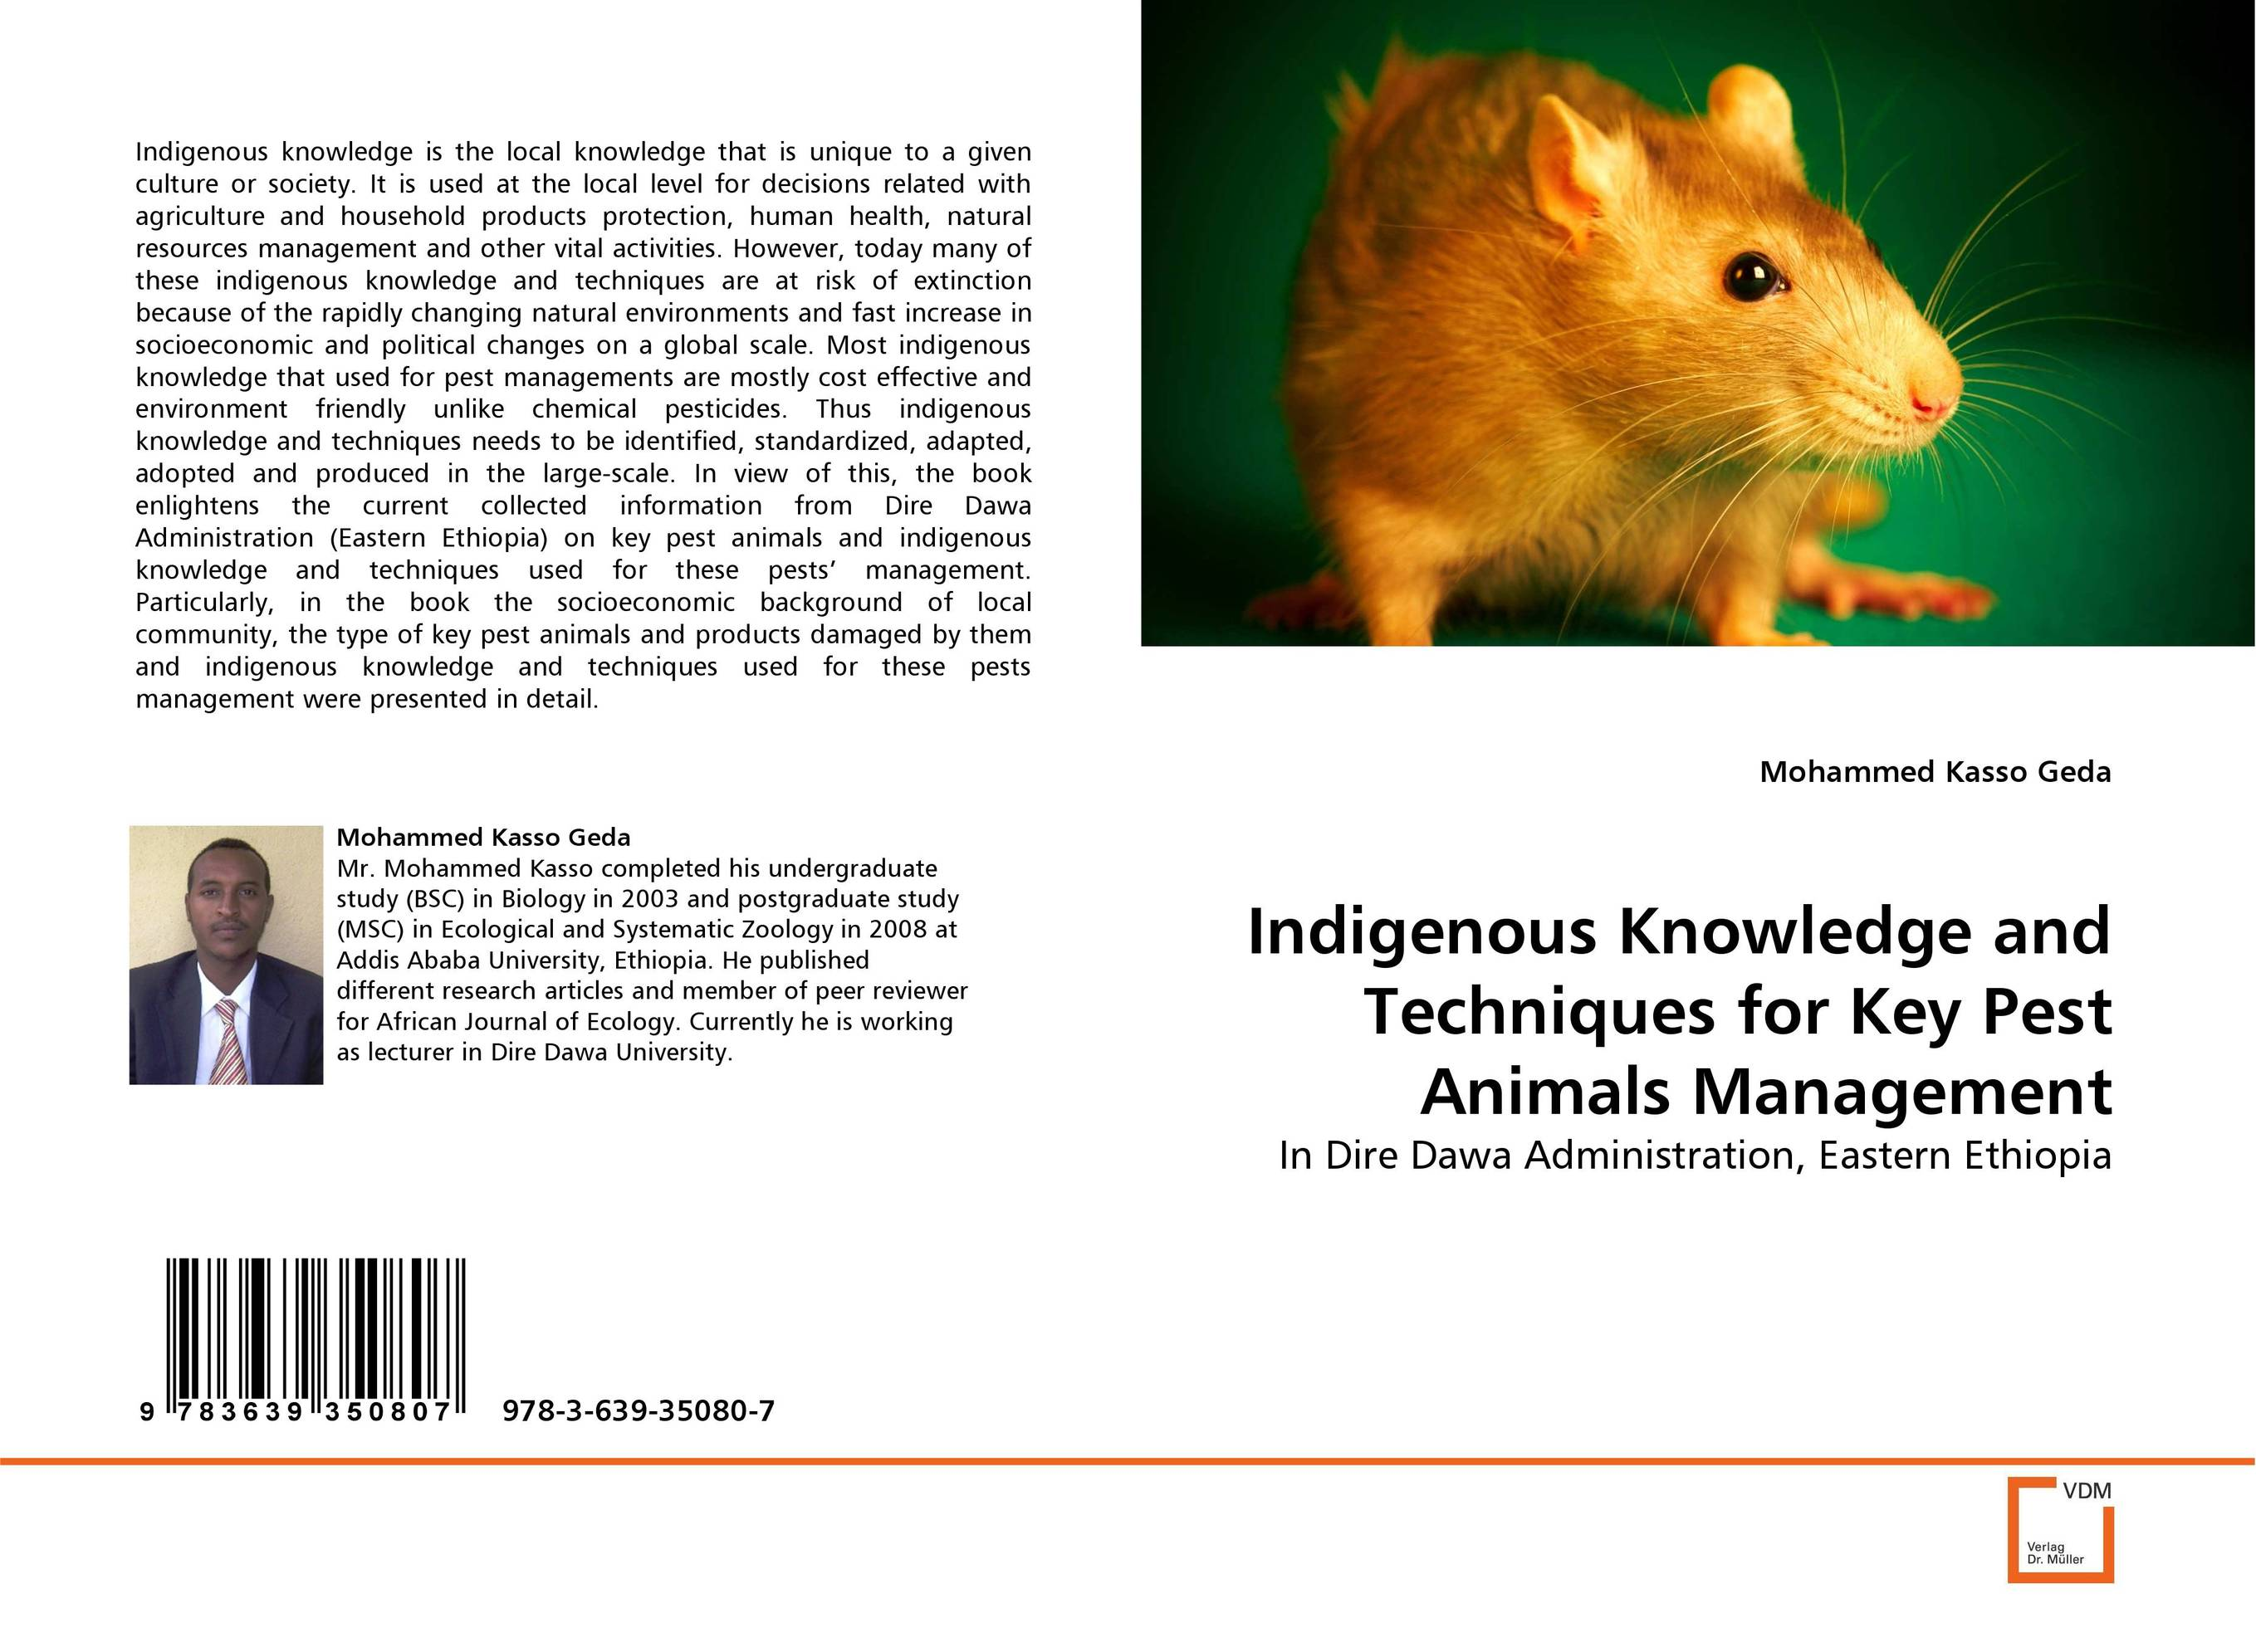 Indigenous Knowledge and Techniques for Key Pest Animals Management indigenous knowledge and techniques for key pest animals management